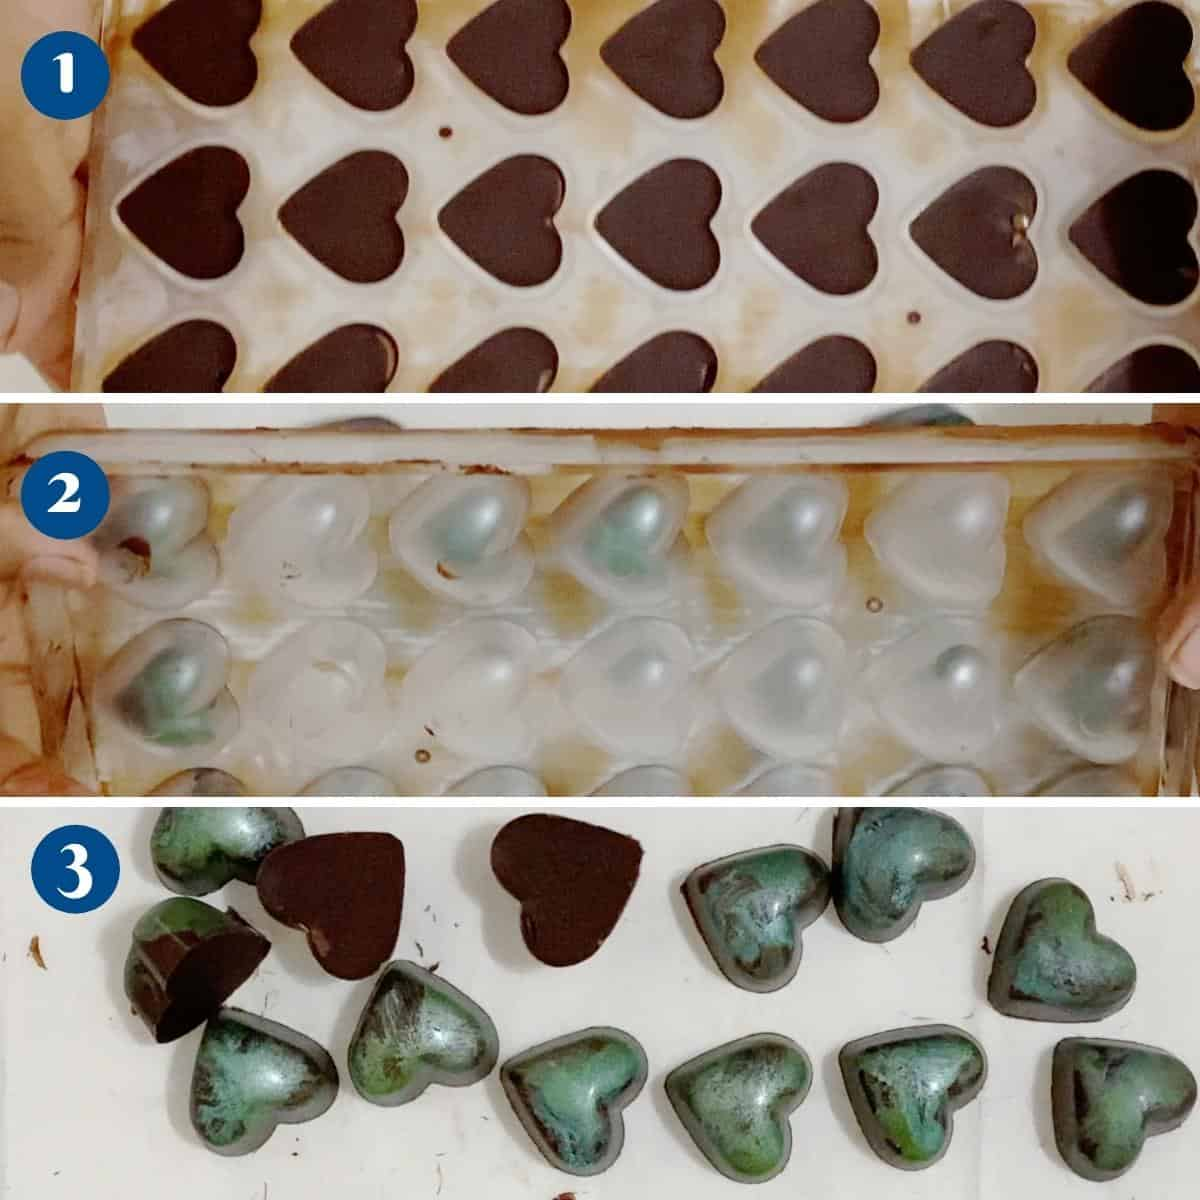 Progress pictures collage removing the bonbons from the mold.